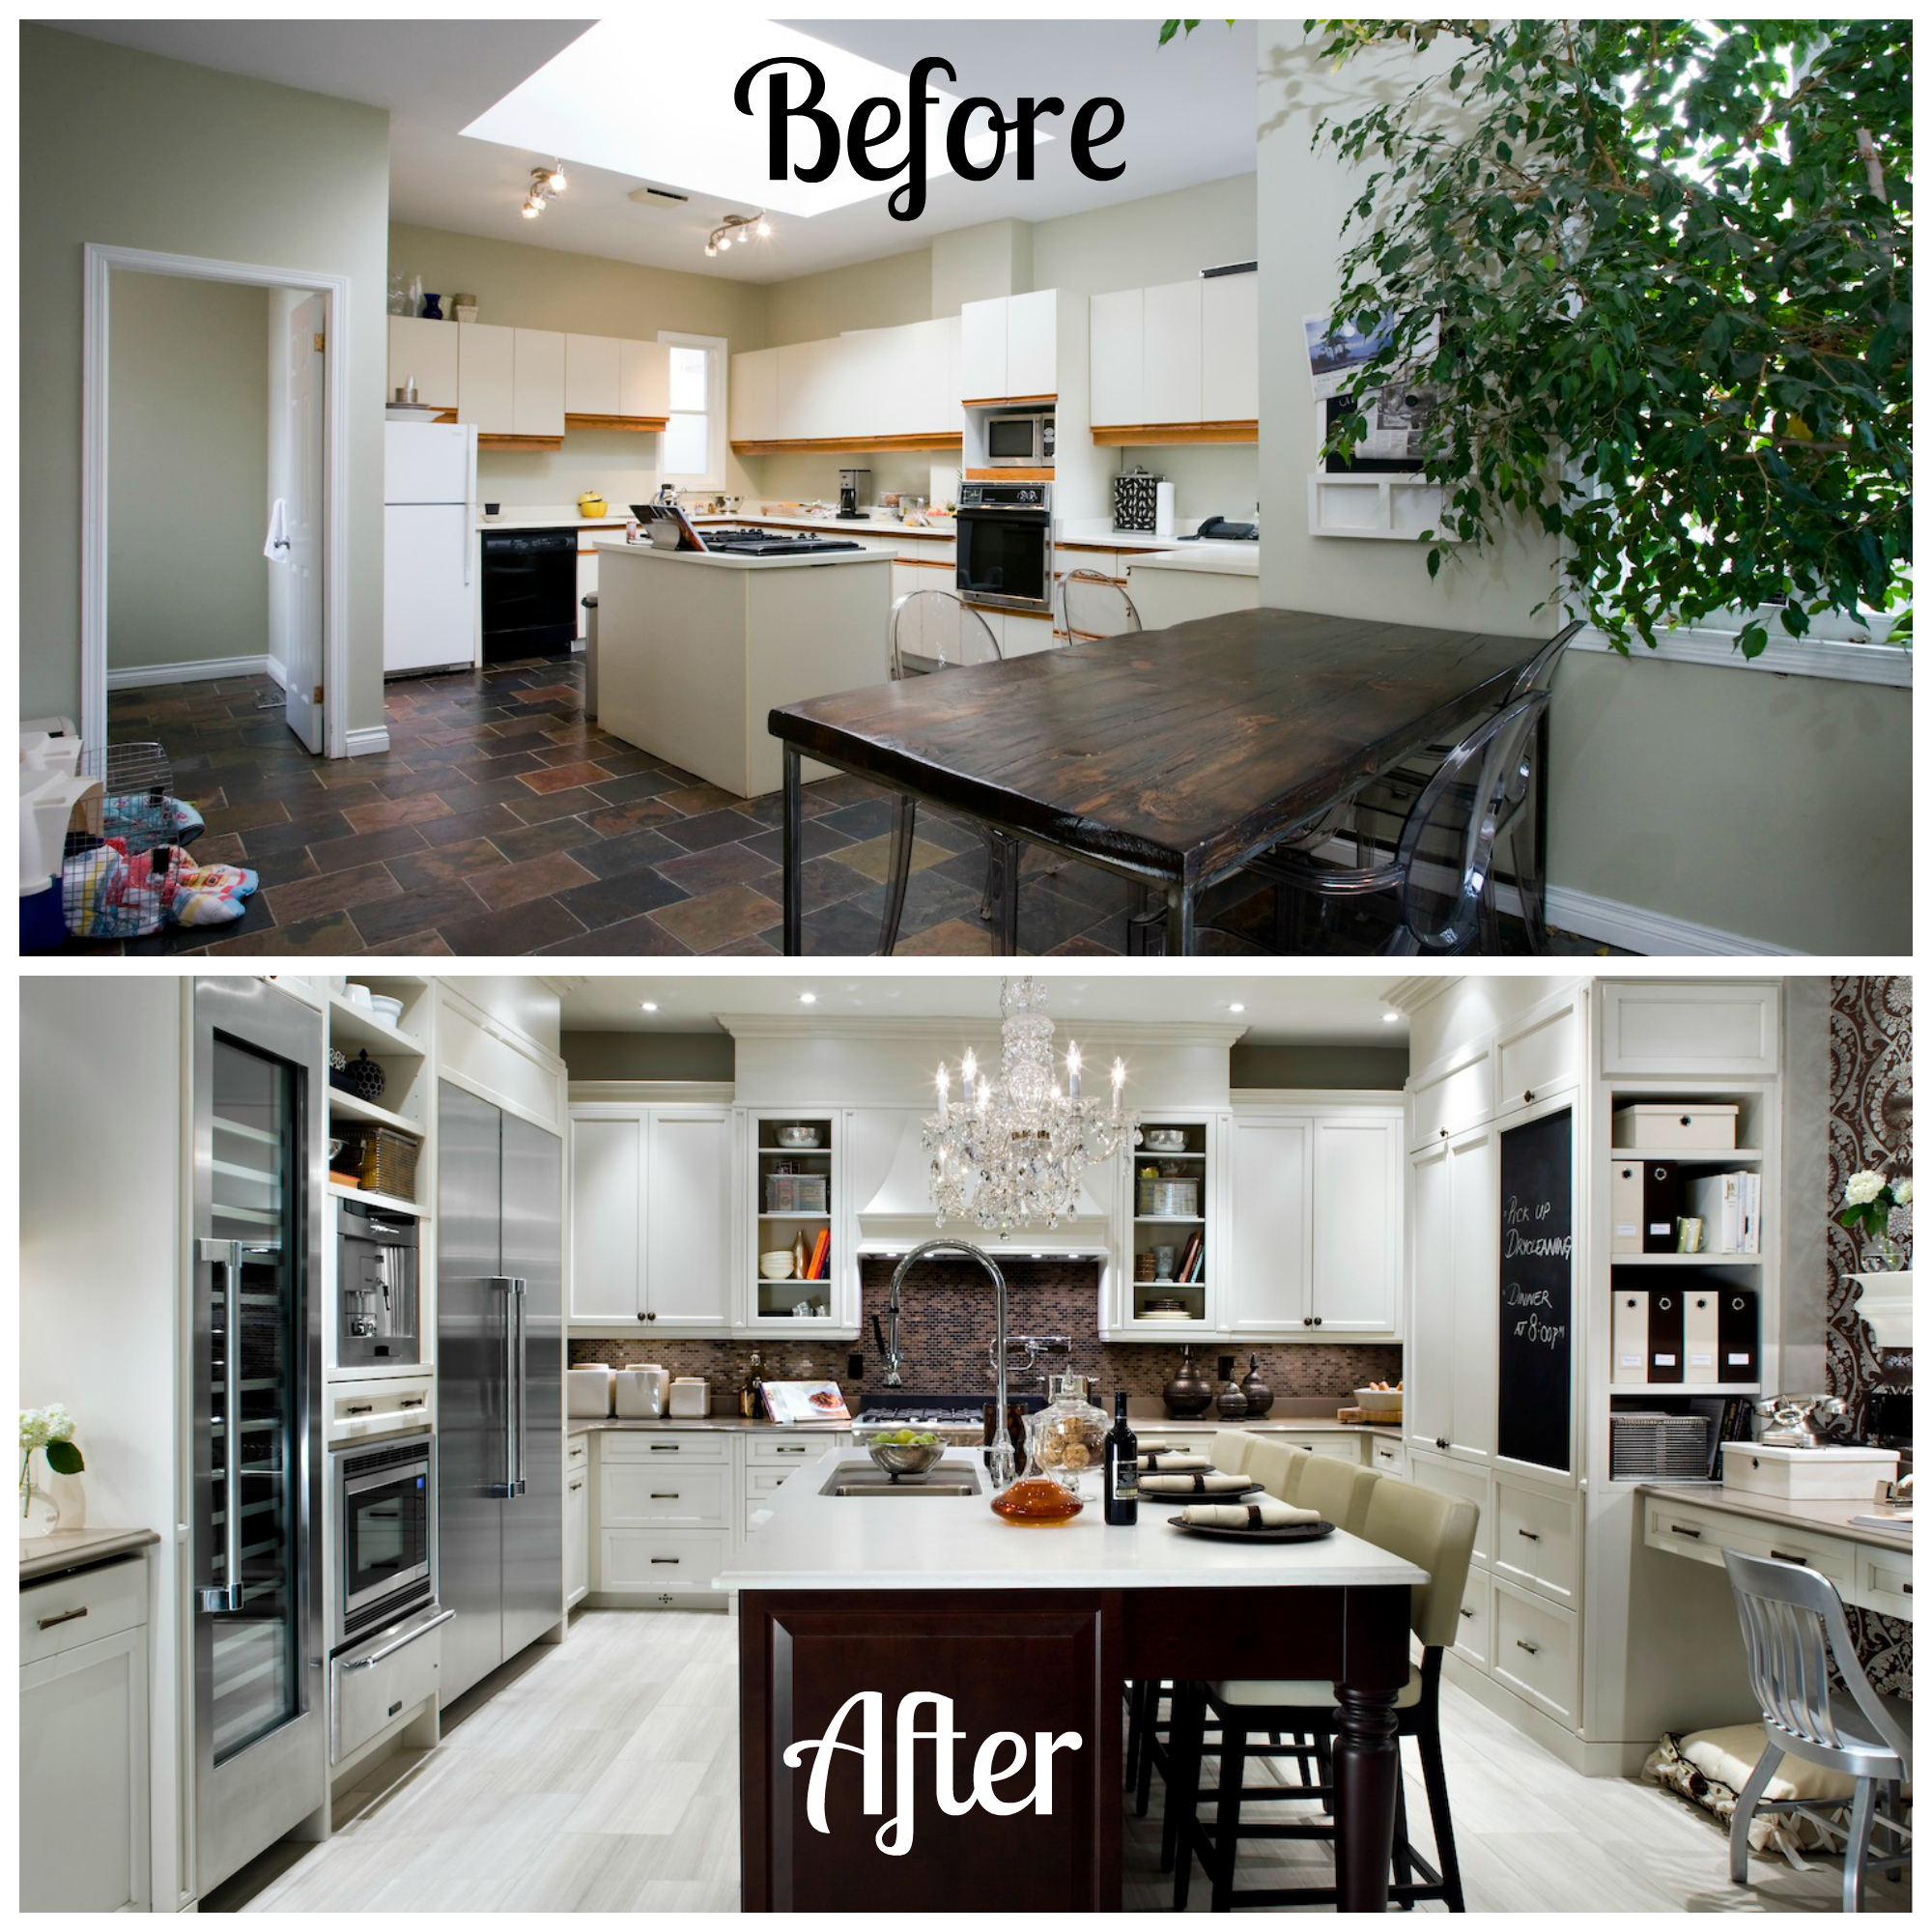 Thermador Home Appliance Blog Candice Olson David S Fashion Forward Kitchen Thermador Home Appliance Blog